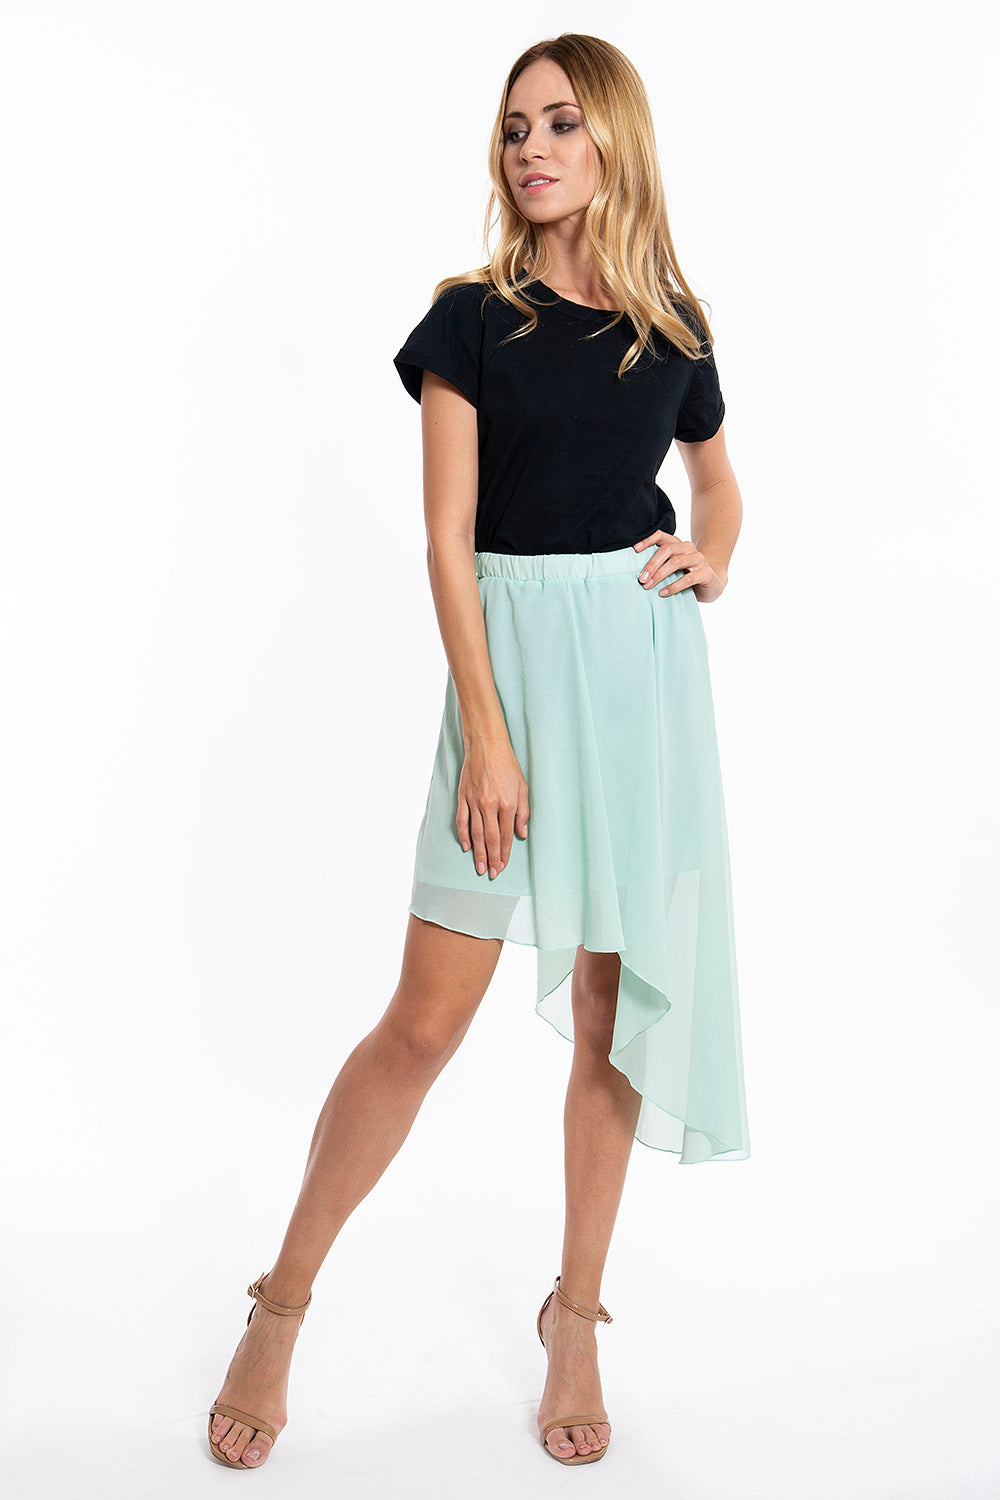 Akè cute mint extreme asymmetrical skirt